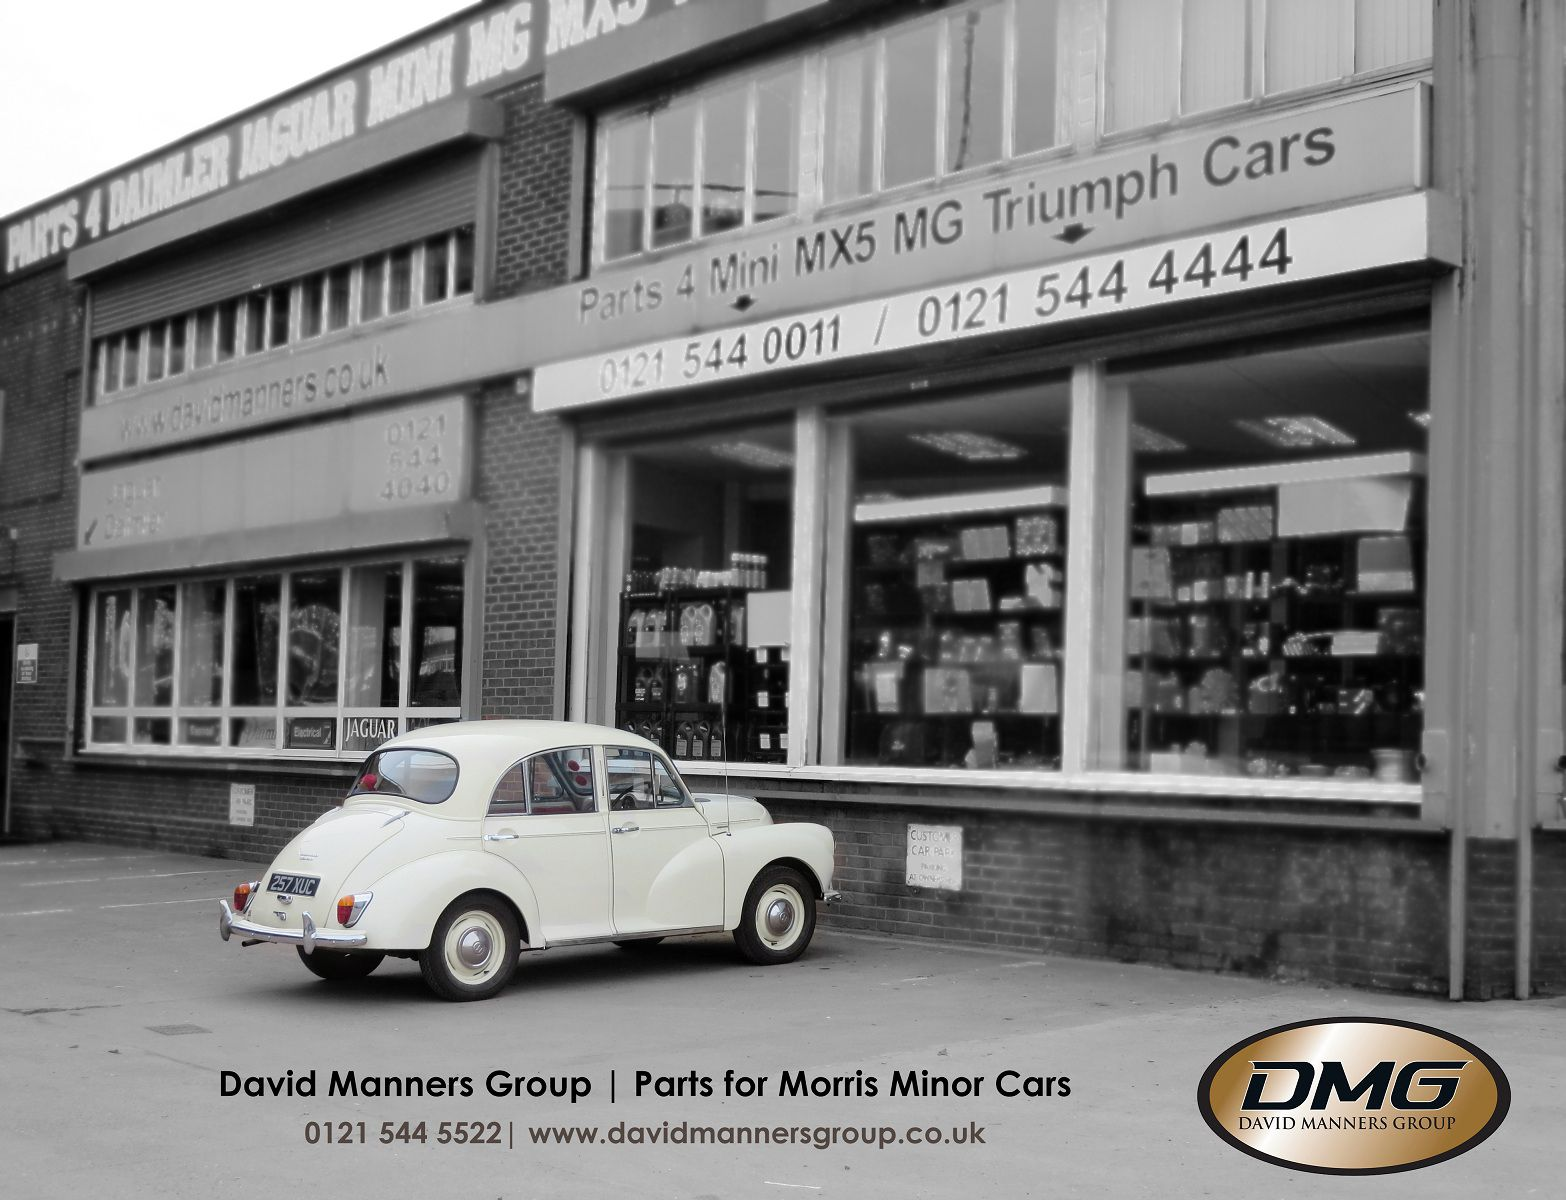 Morris Minor 1000 in white at the David Manners Group http